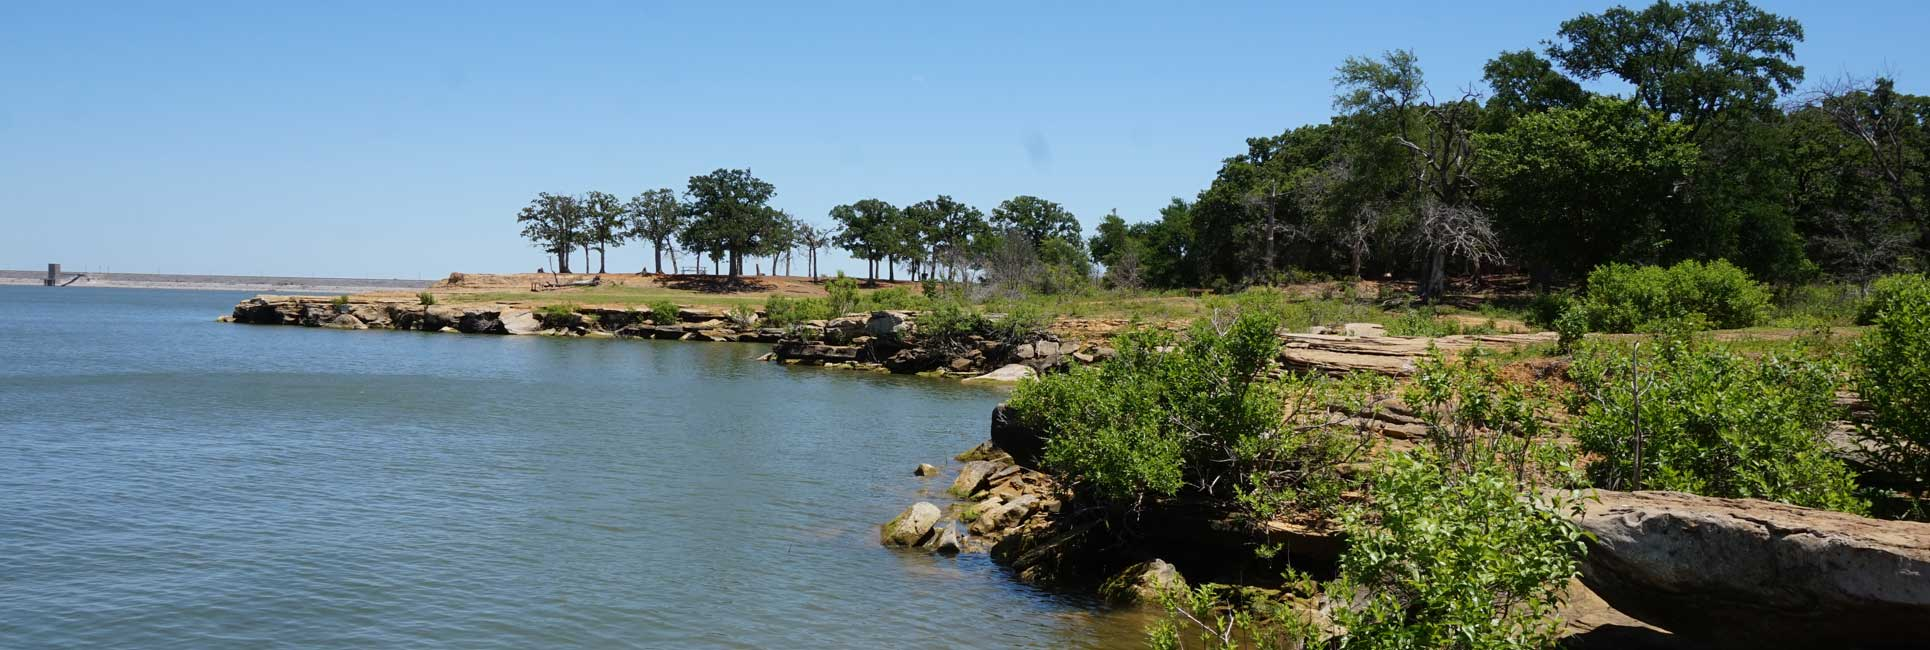 The small cliffs and rocks that line the shore of Grapevine Lake , Texas